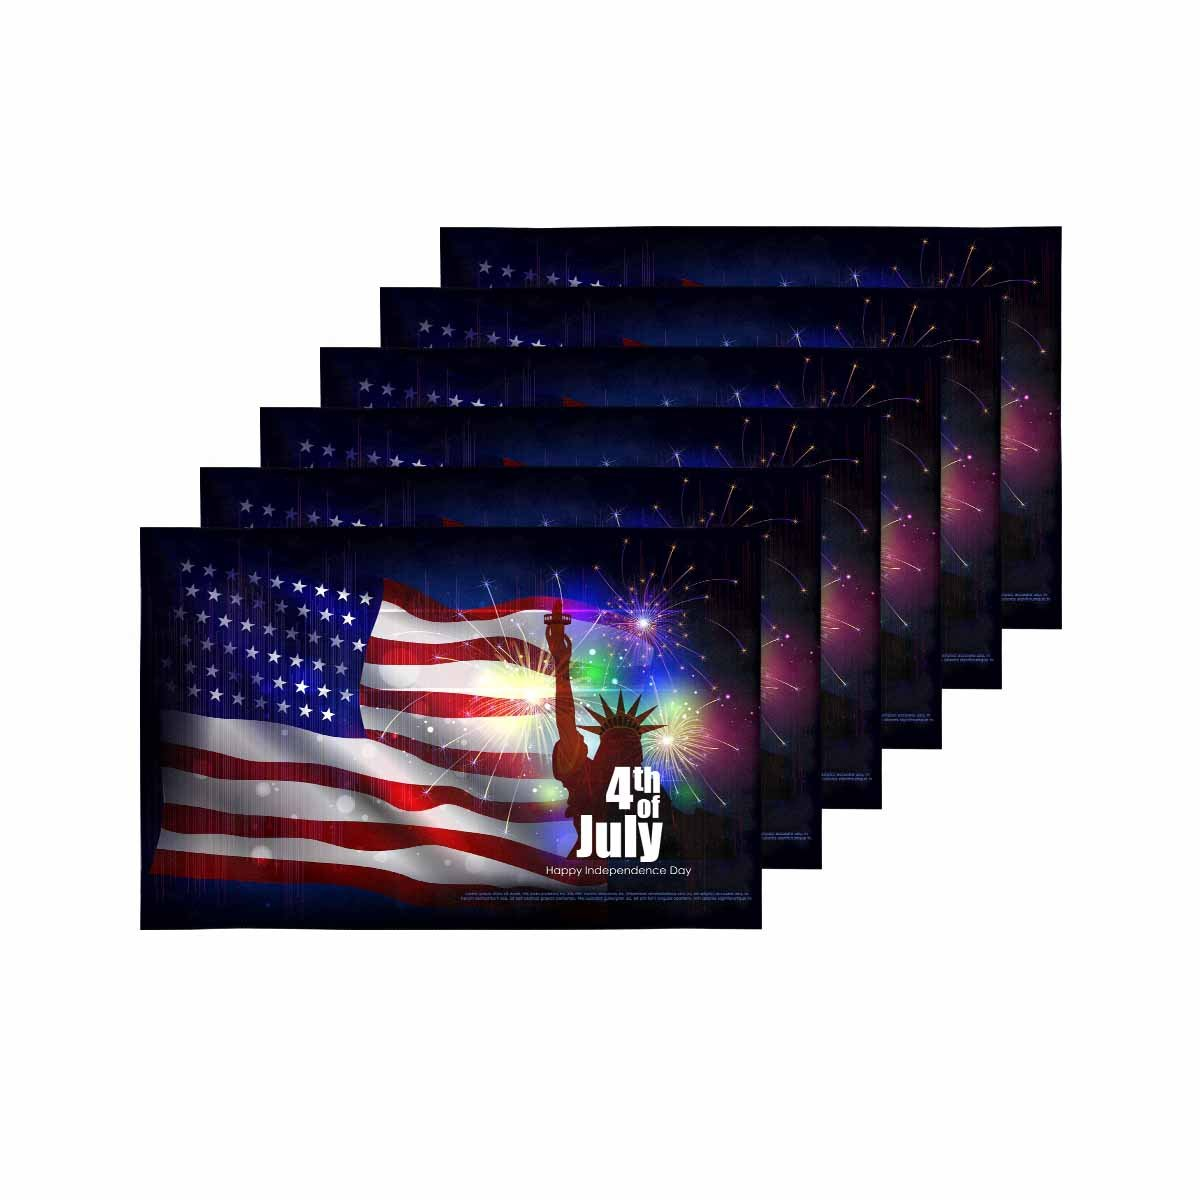 InterestPrint 4th of July Independence Day of America Kitchen Table Mats Placemats Set of 6, American USA Flag Statue of Liberty Place Mat for Dining Table Restaurant Home Decor 12''x18''